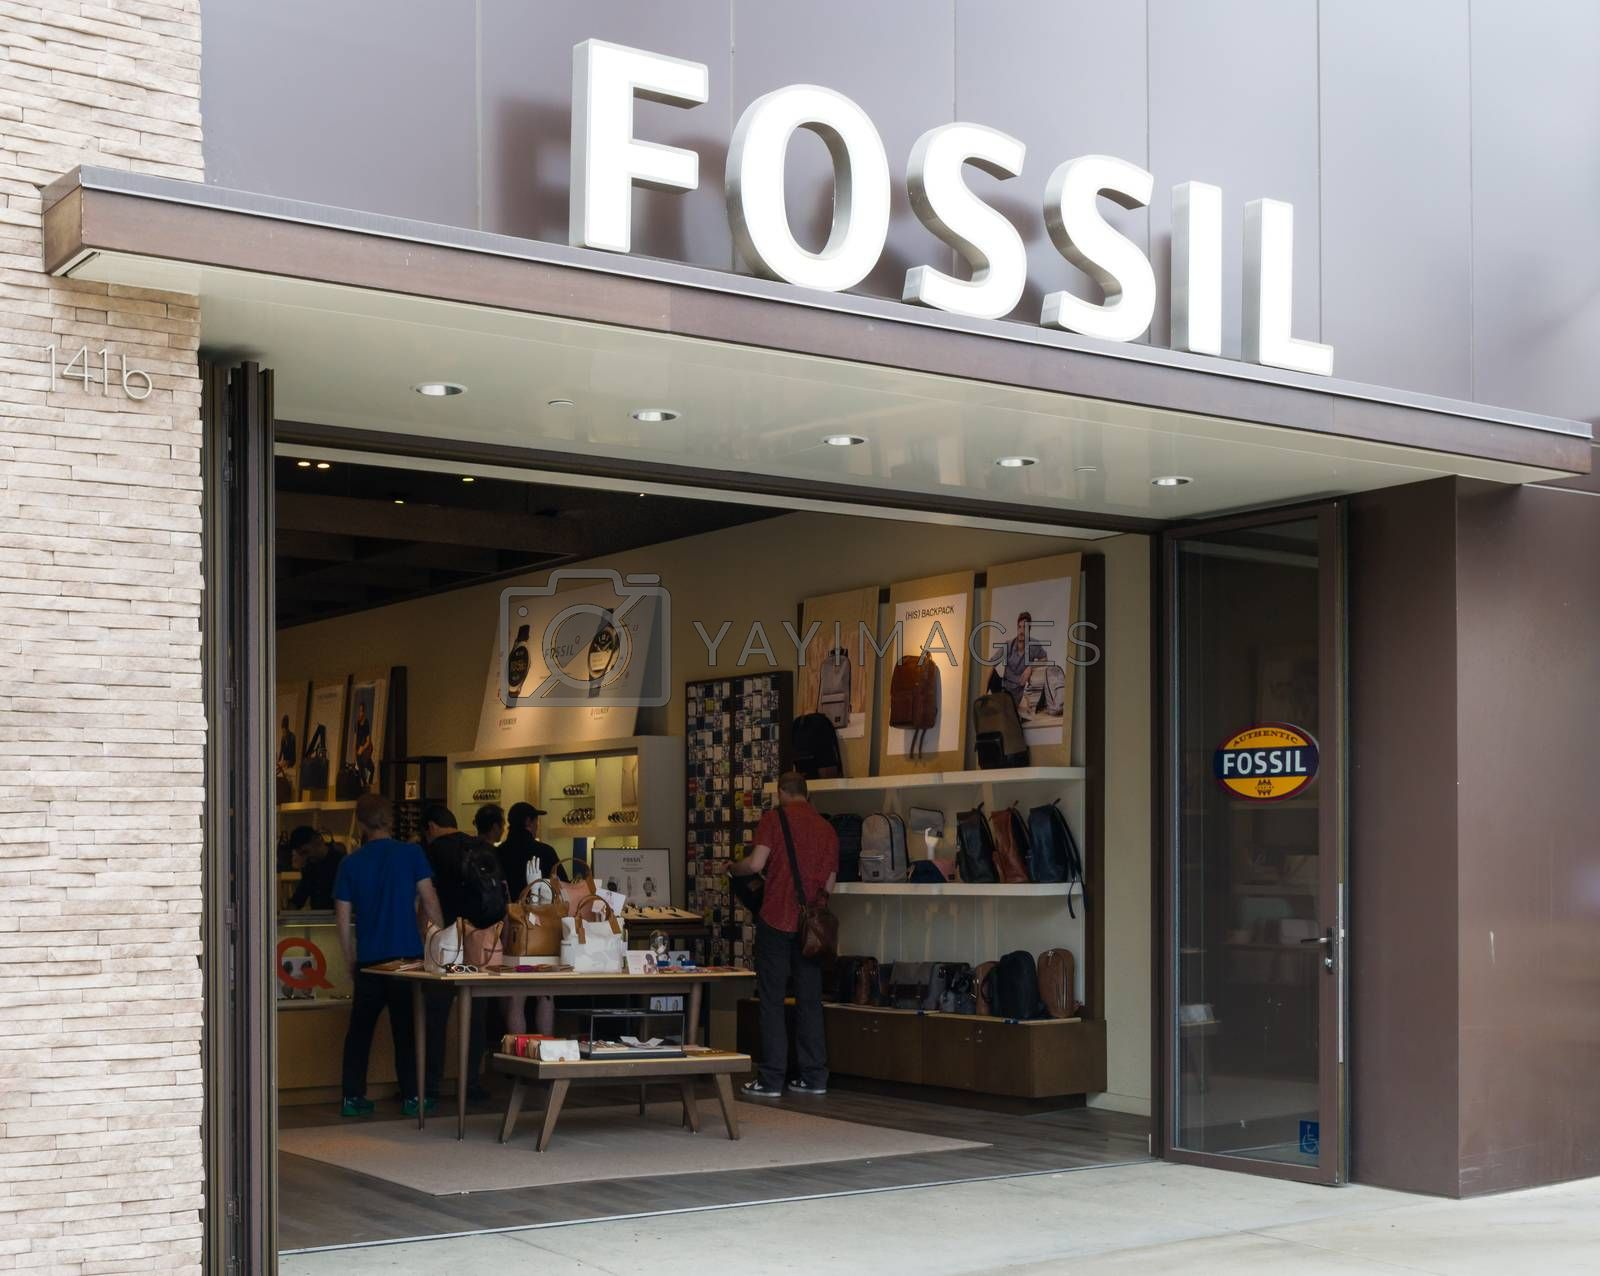 SANTA MONICA, CA/USA - MAY 12, 2016: Fossil store exterior and sign. Fossil Group, Inc. is an American designer and manufacturer of watches, jewelry and accessories.